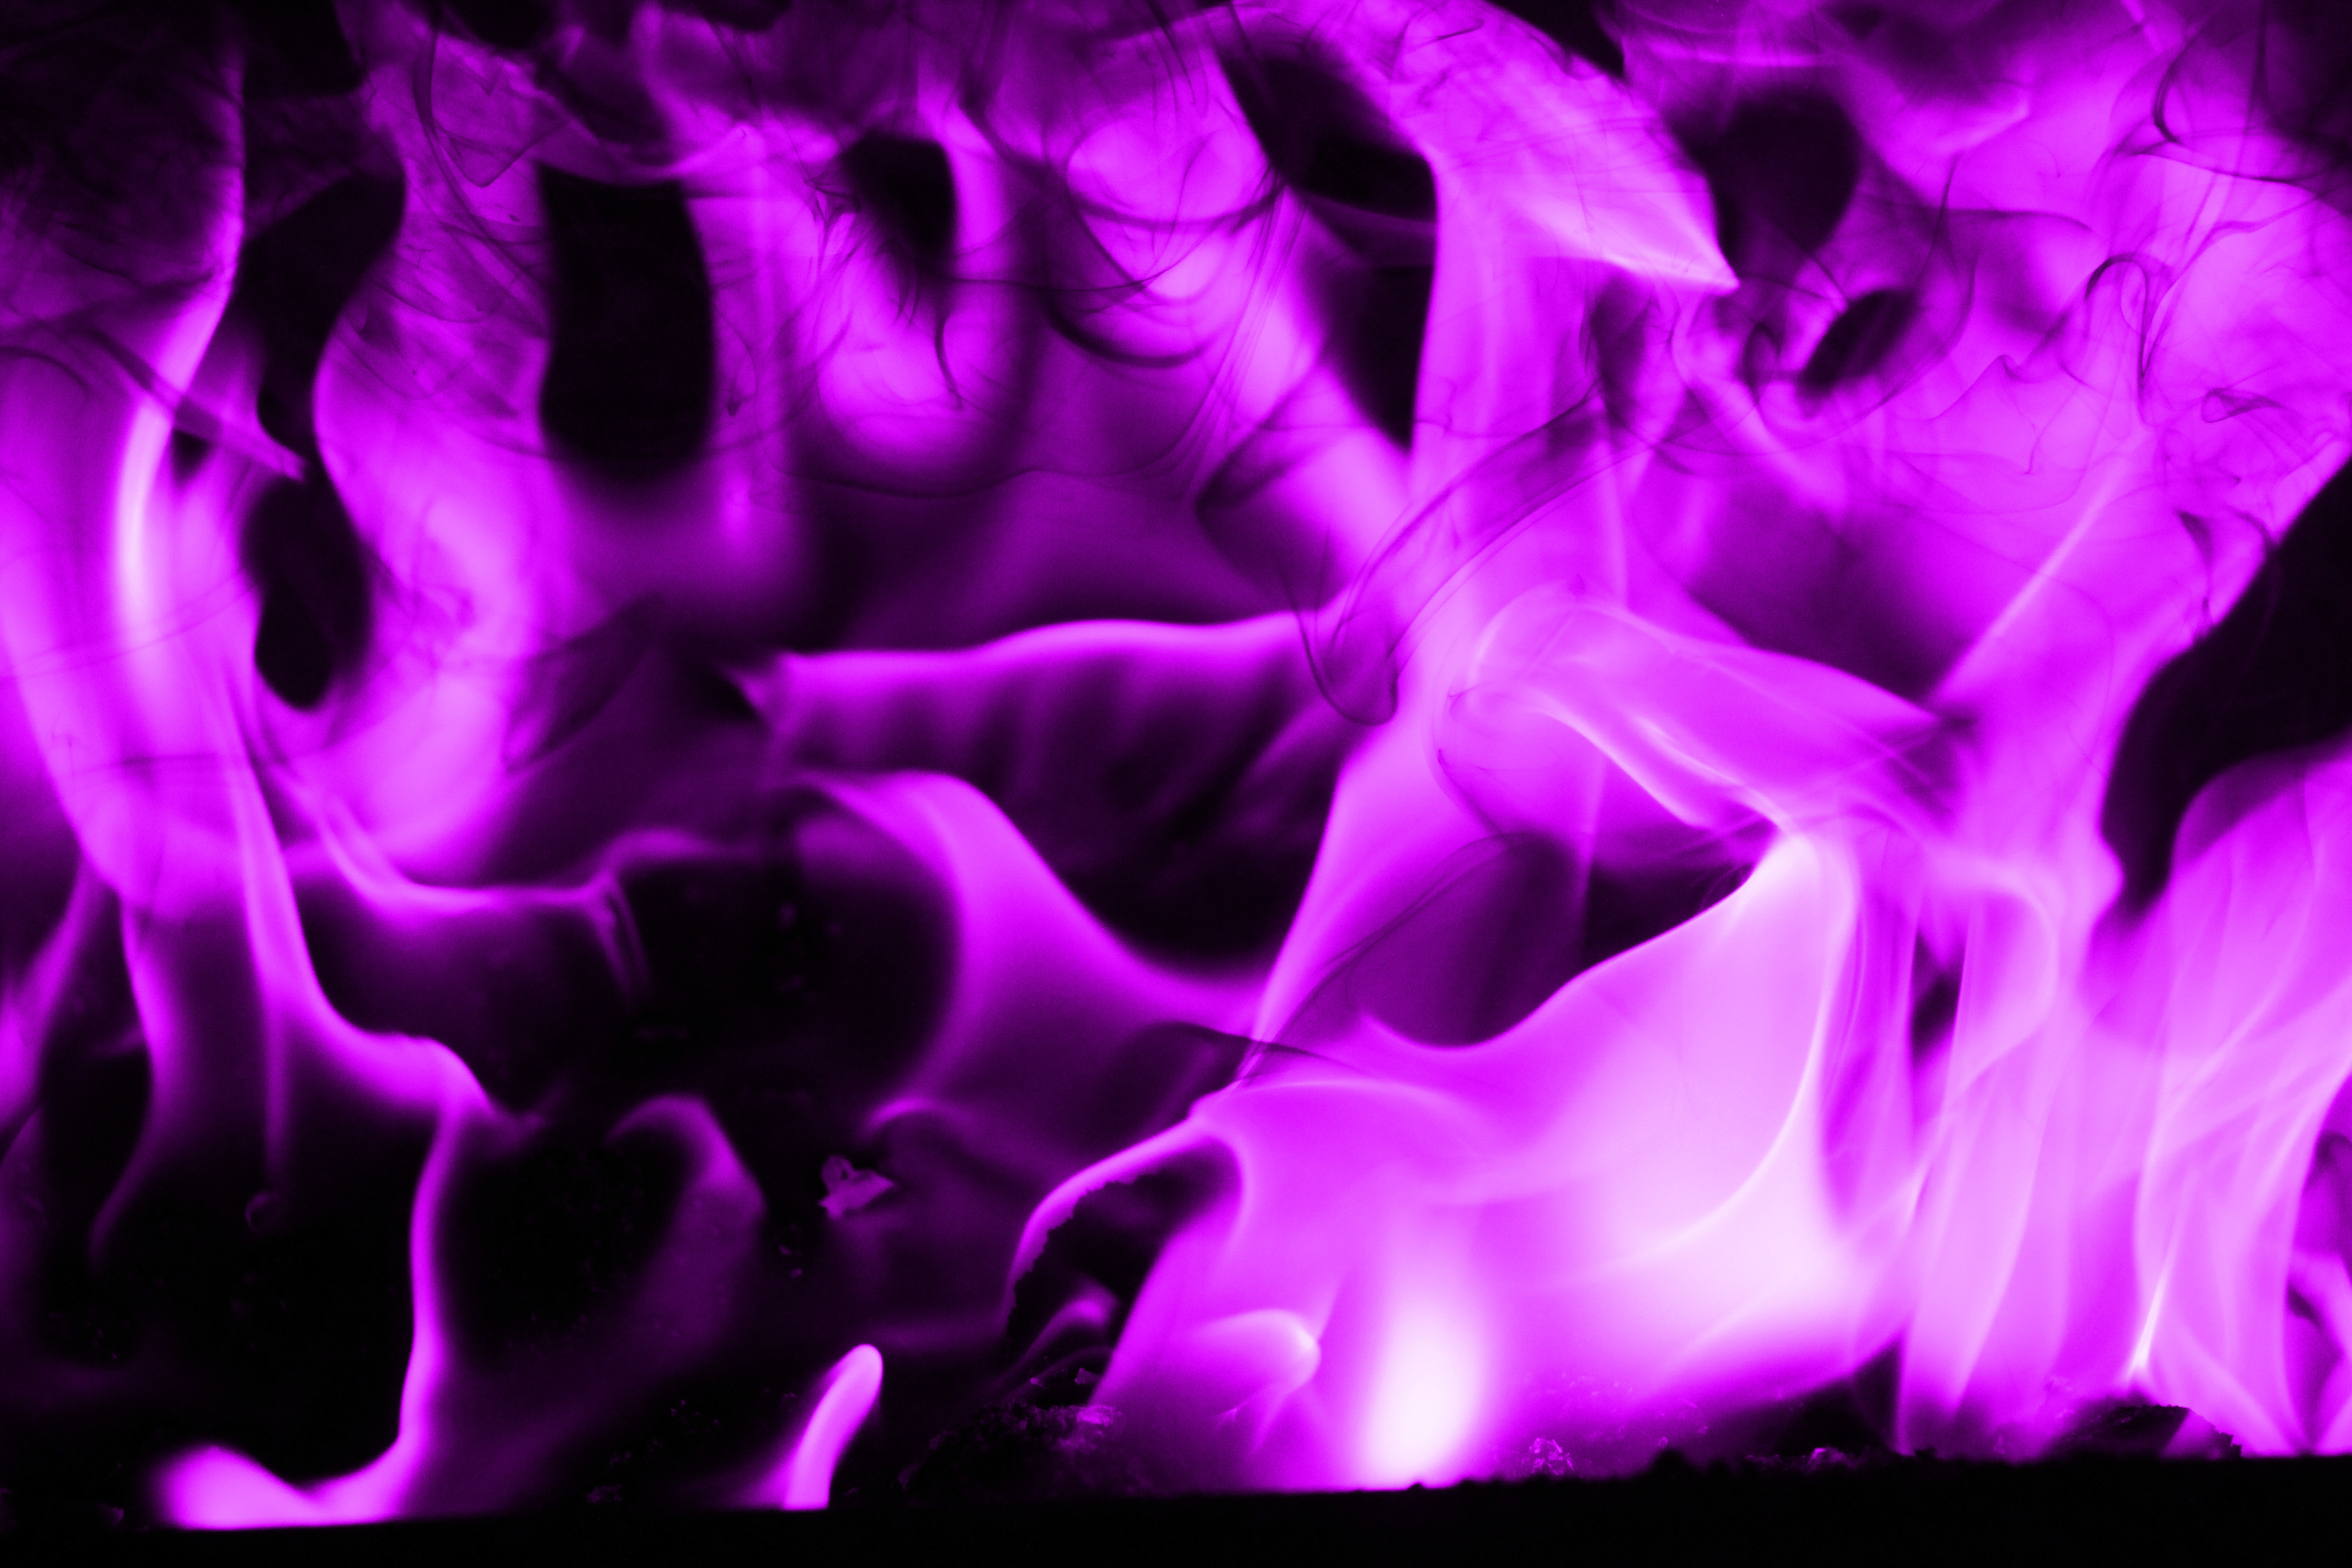 purple flames background wallpapersafari